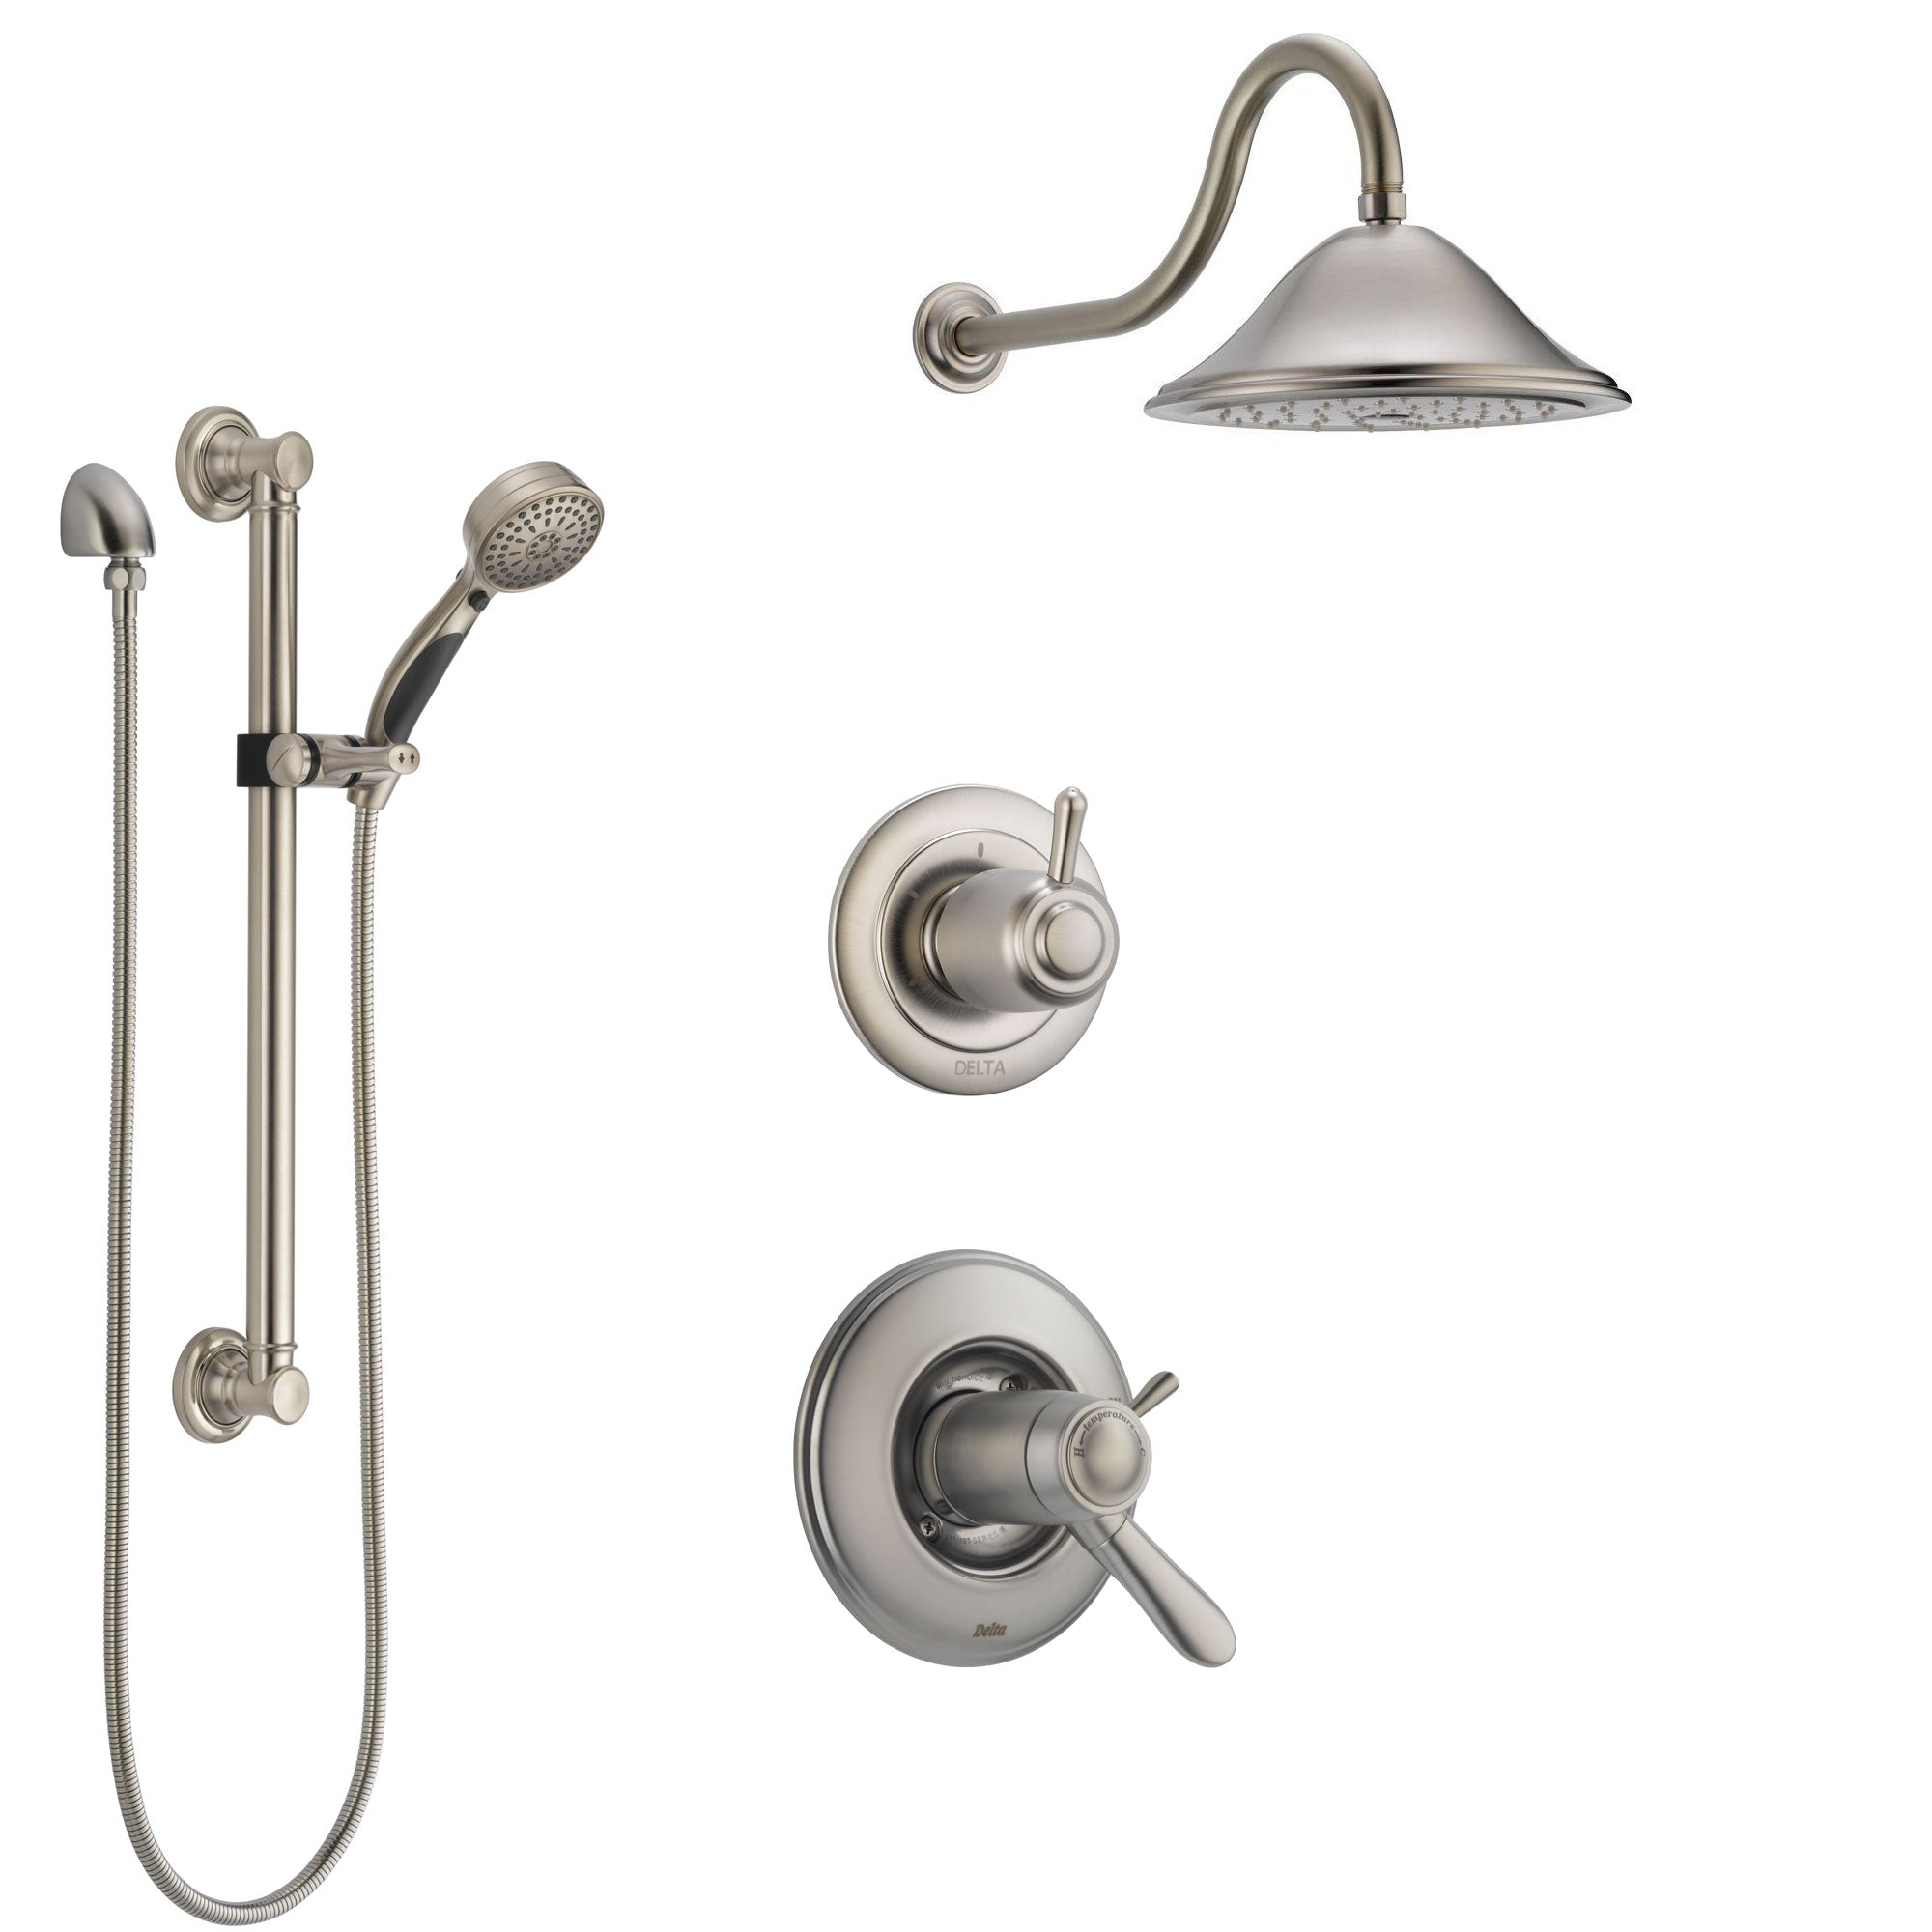 Delta Lahara Dual Thermostatic Control Handle Stainless Steel Finish Shower System, Diverter, Showerhead, and Hand Shower with Grab Bar SS17T381SS1